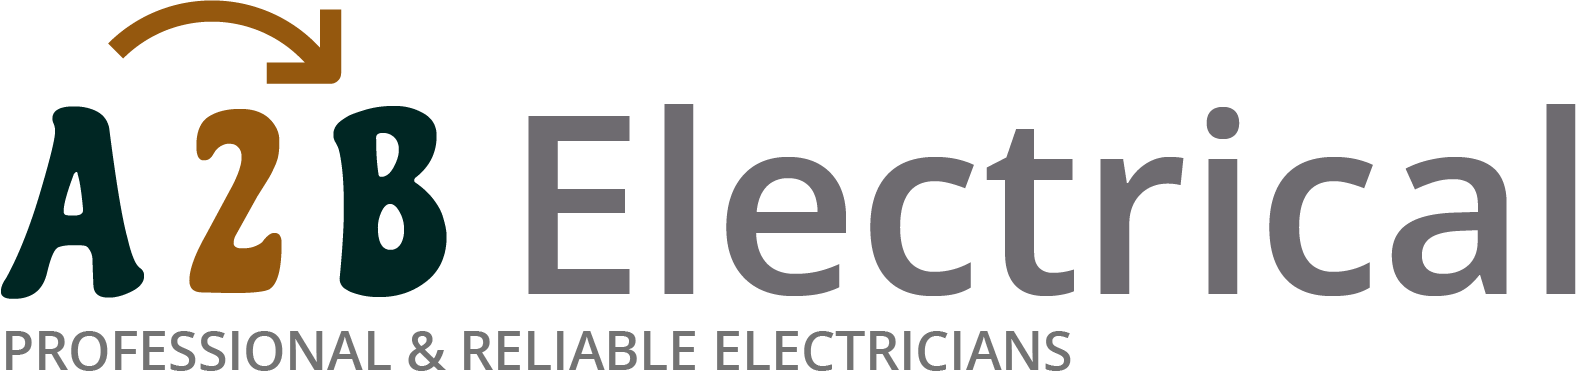 If you have electrical wiring problems in Clayhall, we can provide an electrician to have a look for you.